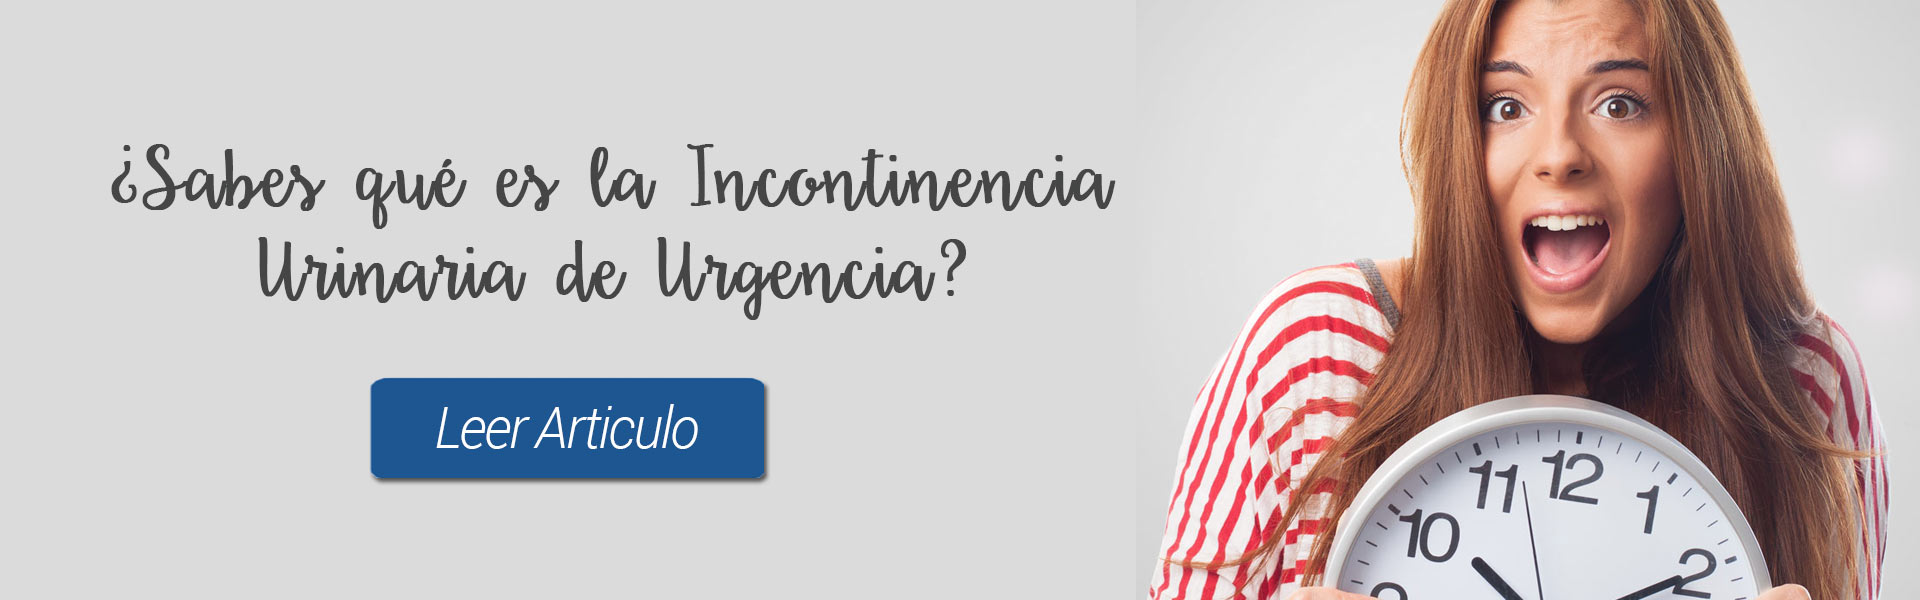 Blog Incontinencia Urinaria